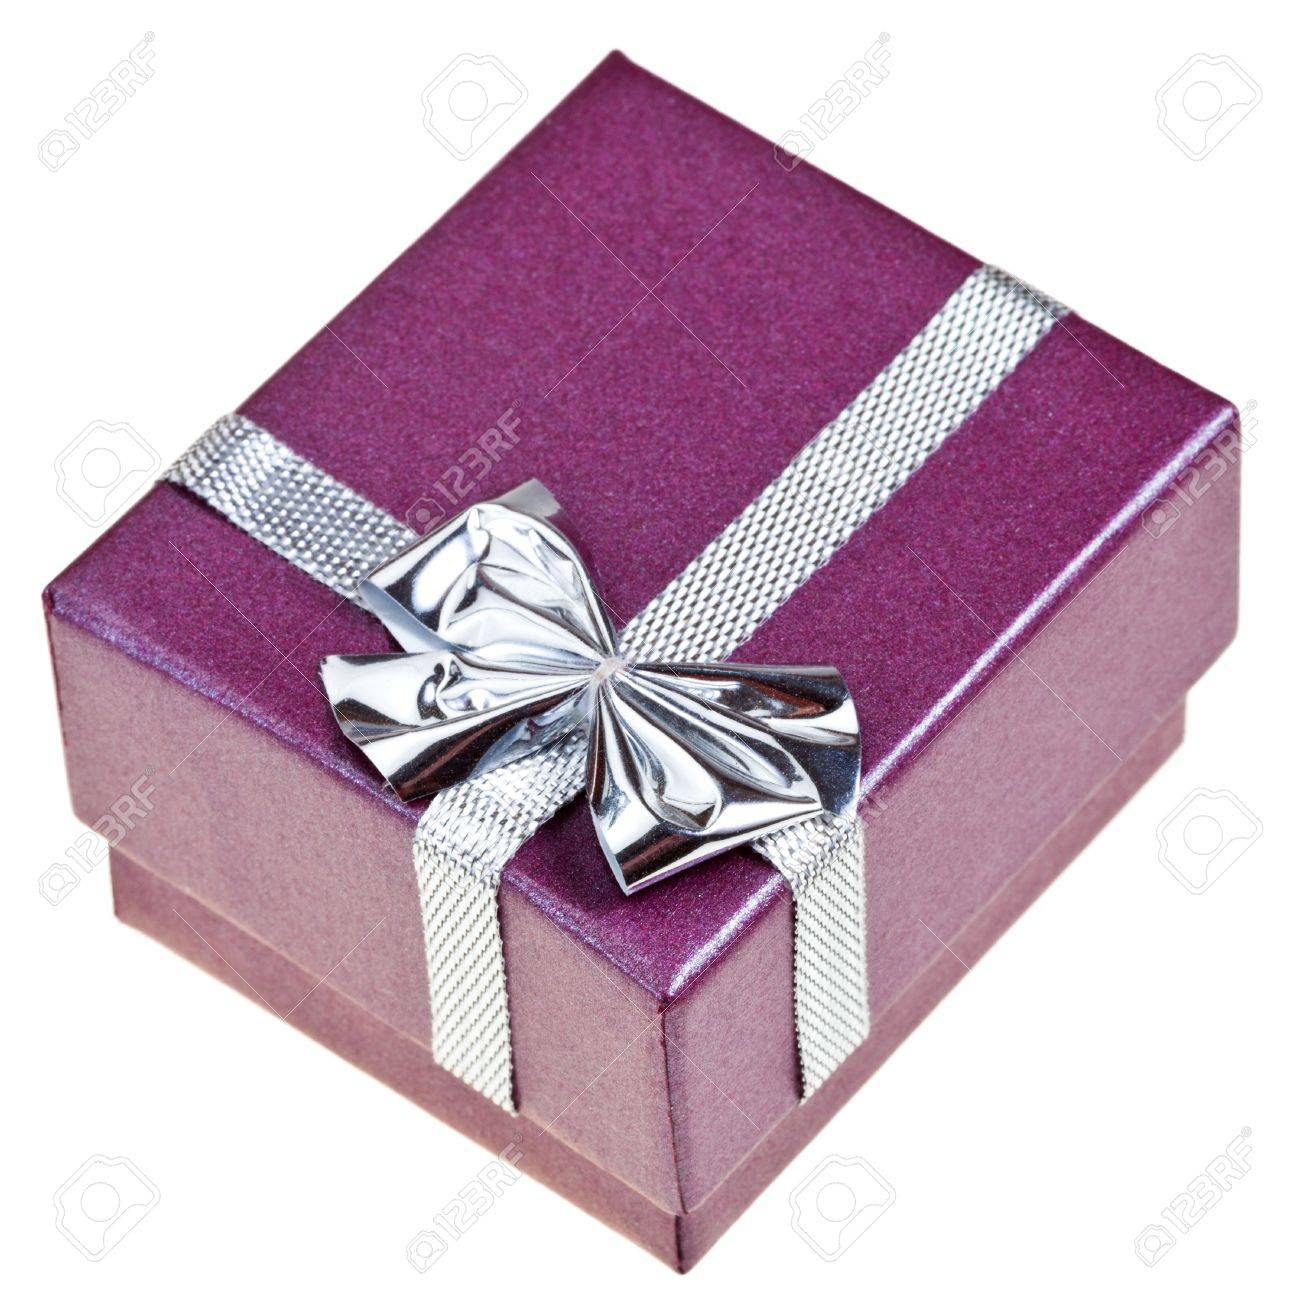 small purple gift box with silver bow isolated on white background Stock Photo - 18901911  sc 1 st  123RF.com & Small Purple Gift Box With Silver Bow Isolated On White Background ...